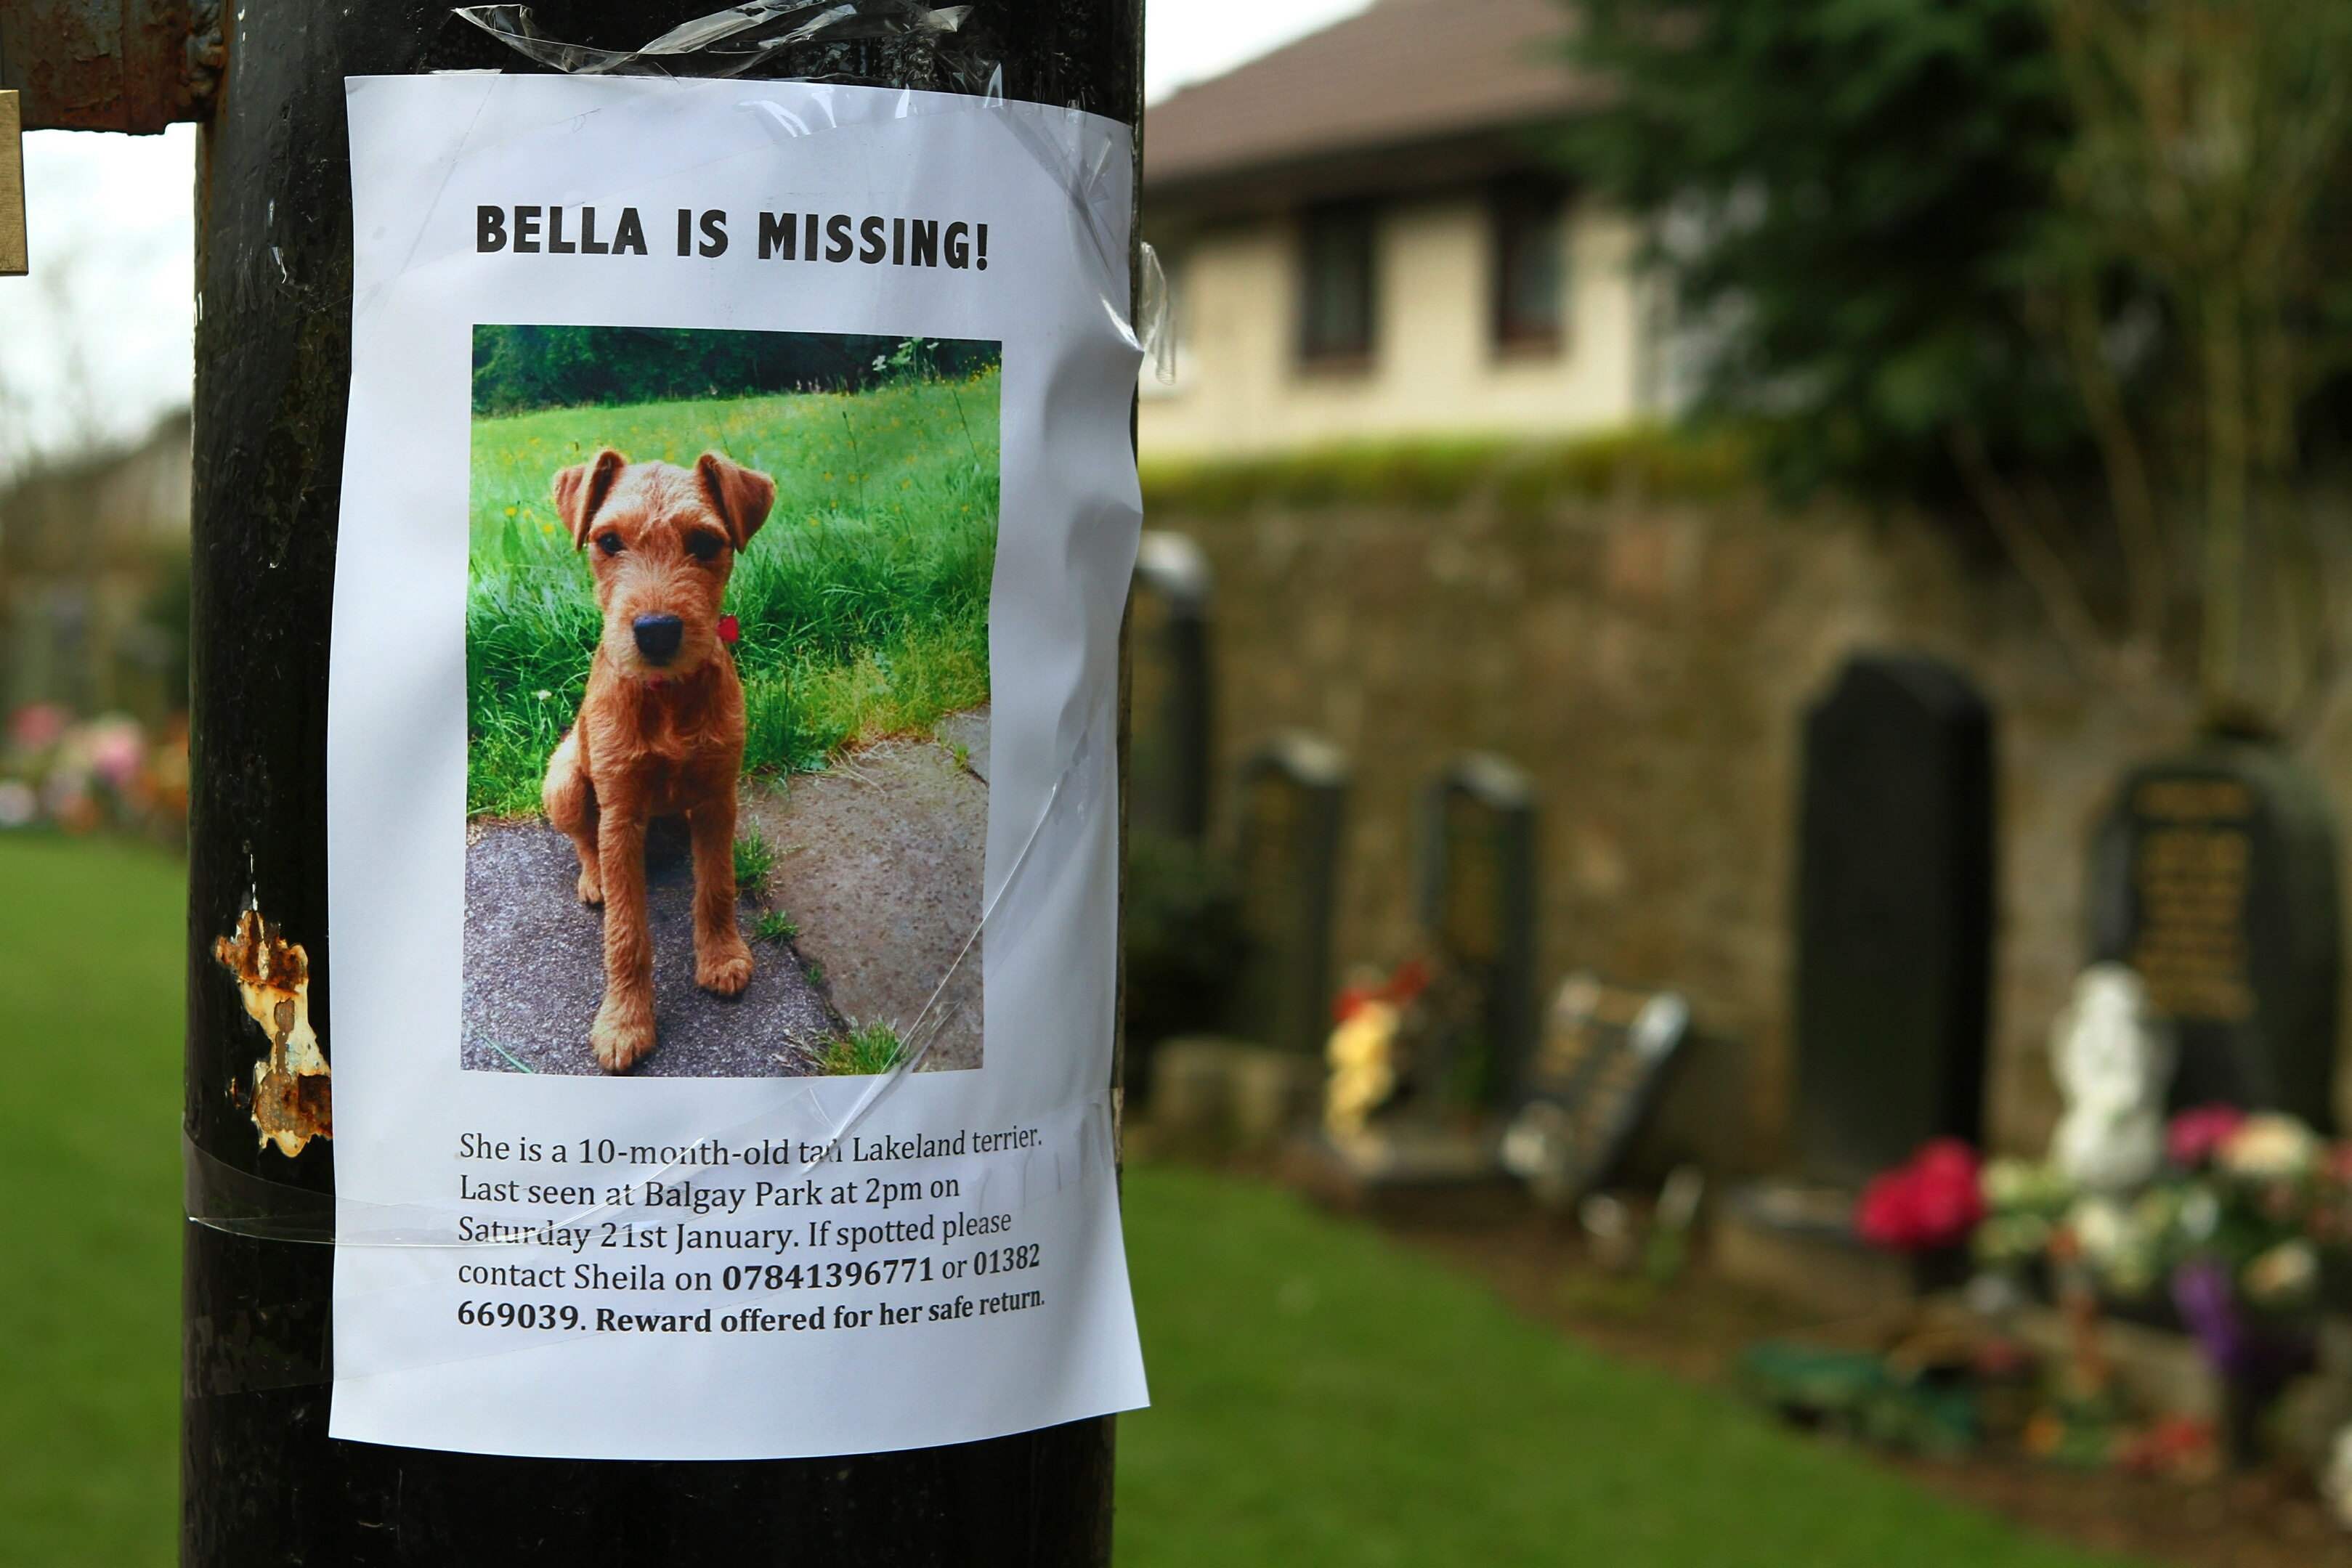 One of the flyers for missing dog Bella, on a post at Balgay Cemetery.